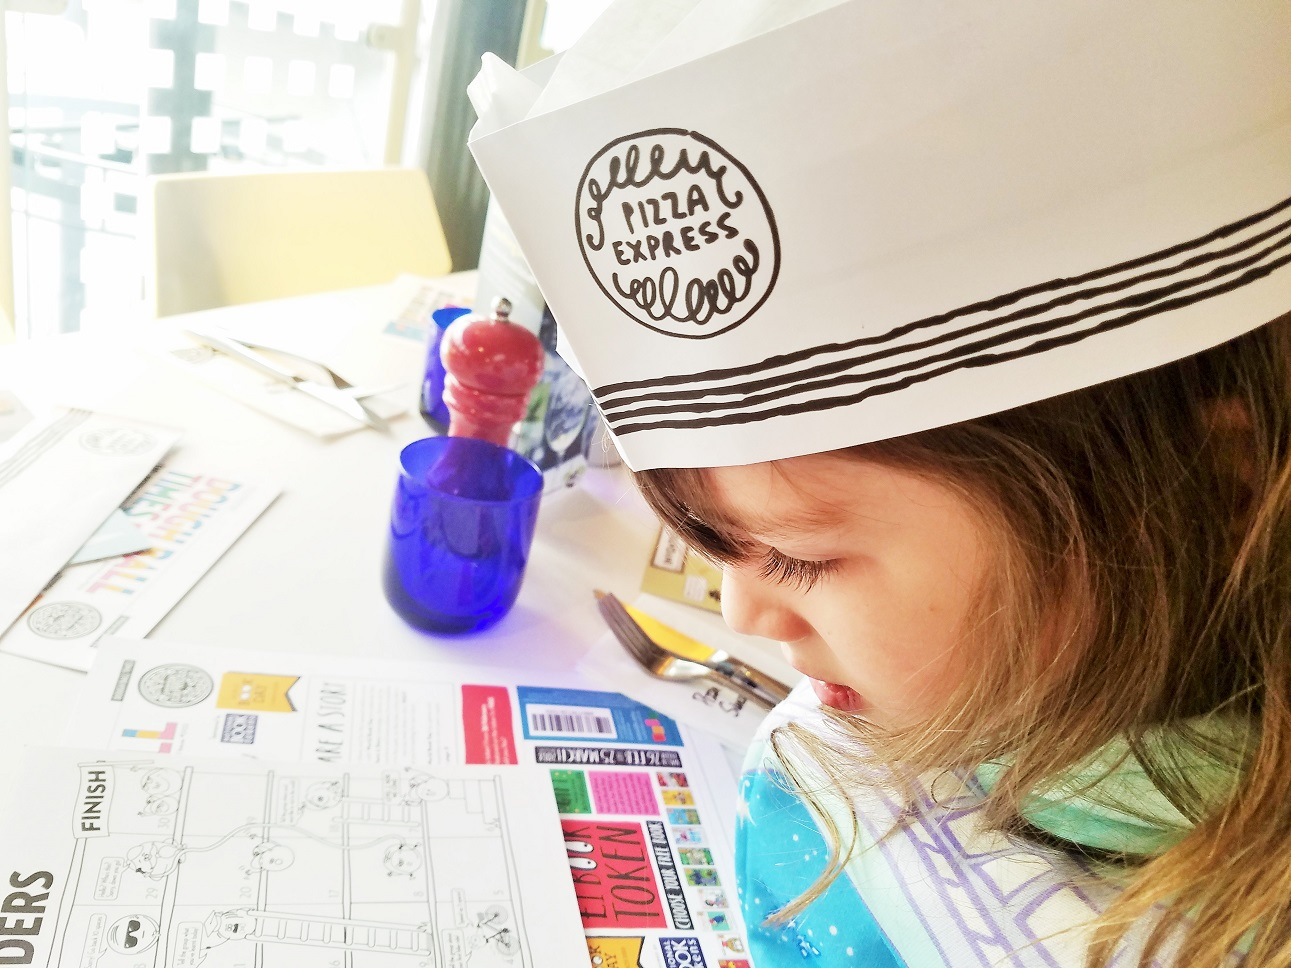 pizza express storytelling workshop with scribblers HQ